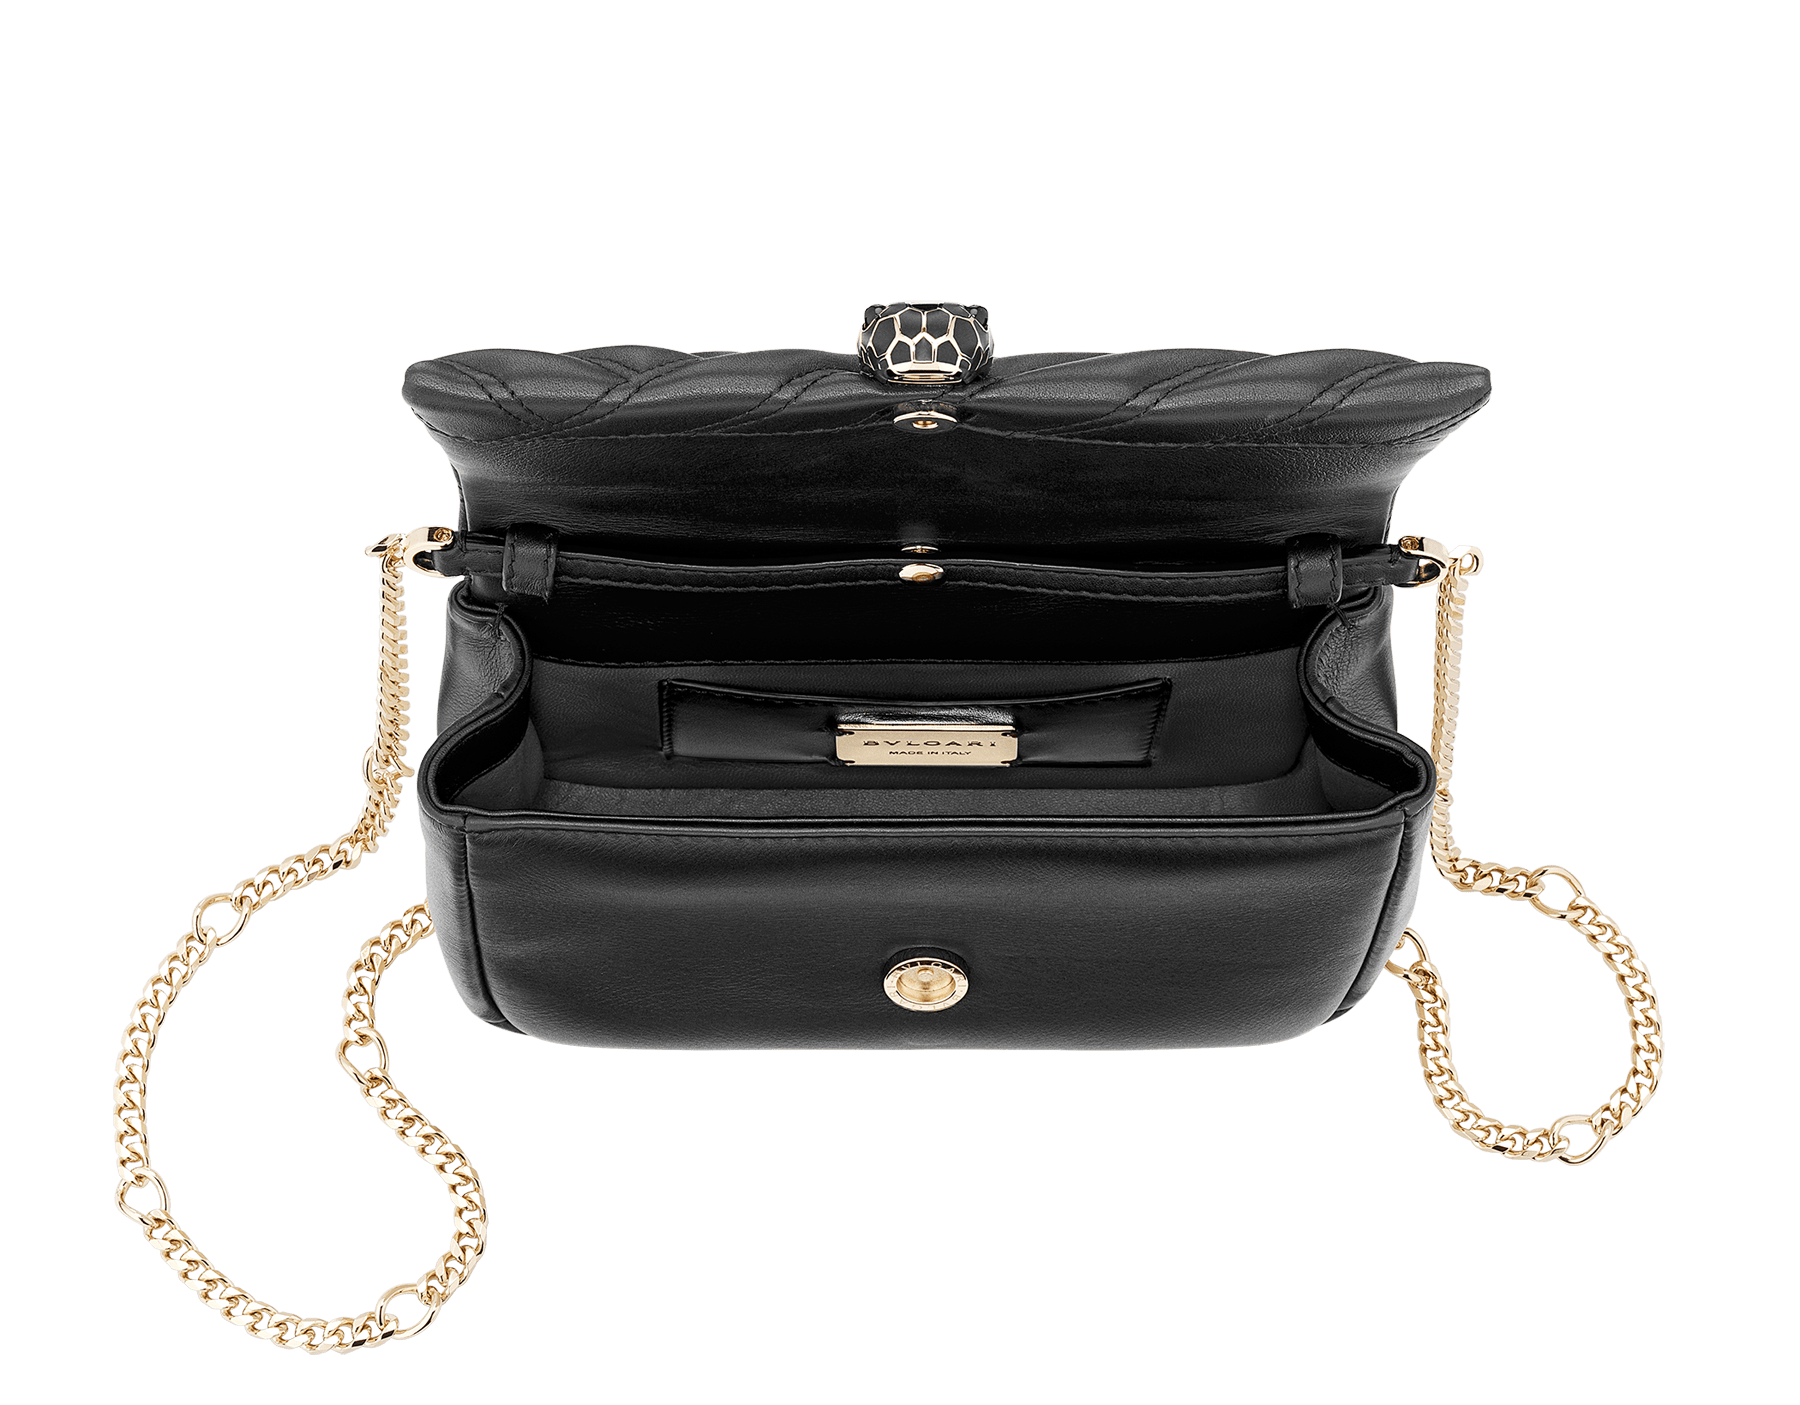 Serpenti Cabochon micro bag in soft matelassé black calf leather, with a graphic motif. Brass pink gold plated tempting snake head closure in black enamel and black onyx eyes. 288755 image 4